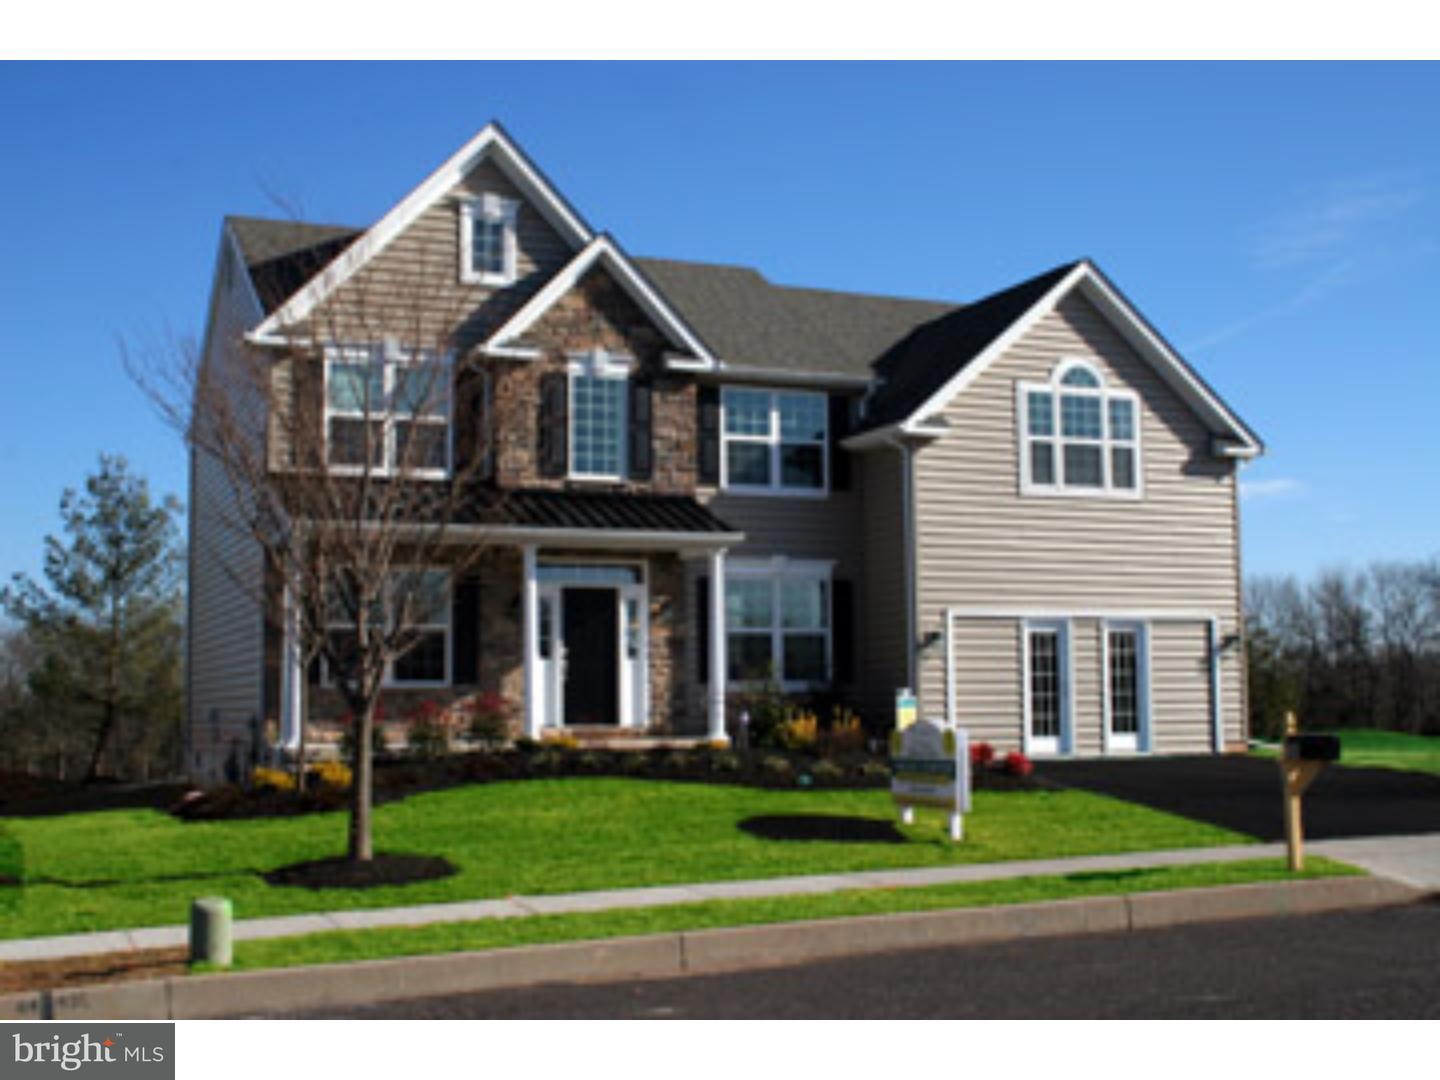 31 HWT W 5TH AVE, COLLEGEVILLE - Listed at $389,990, COLLEGEVILLE